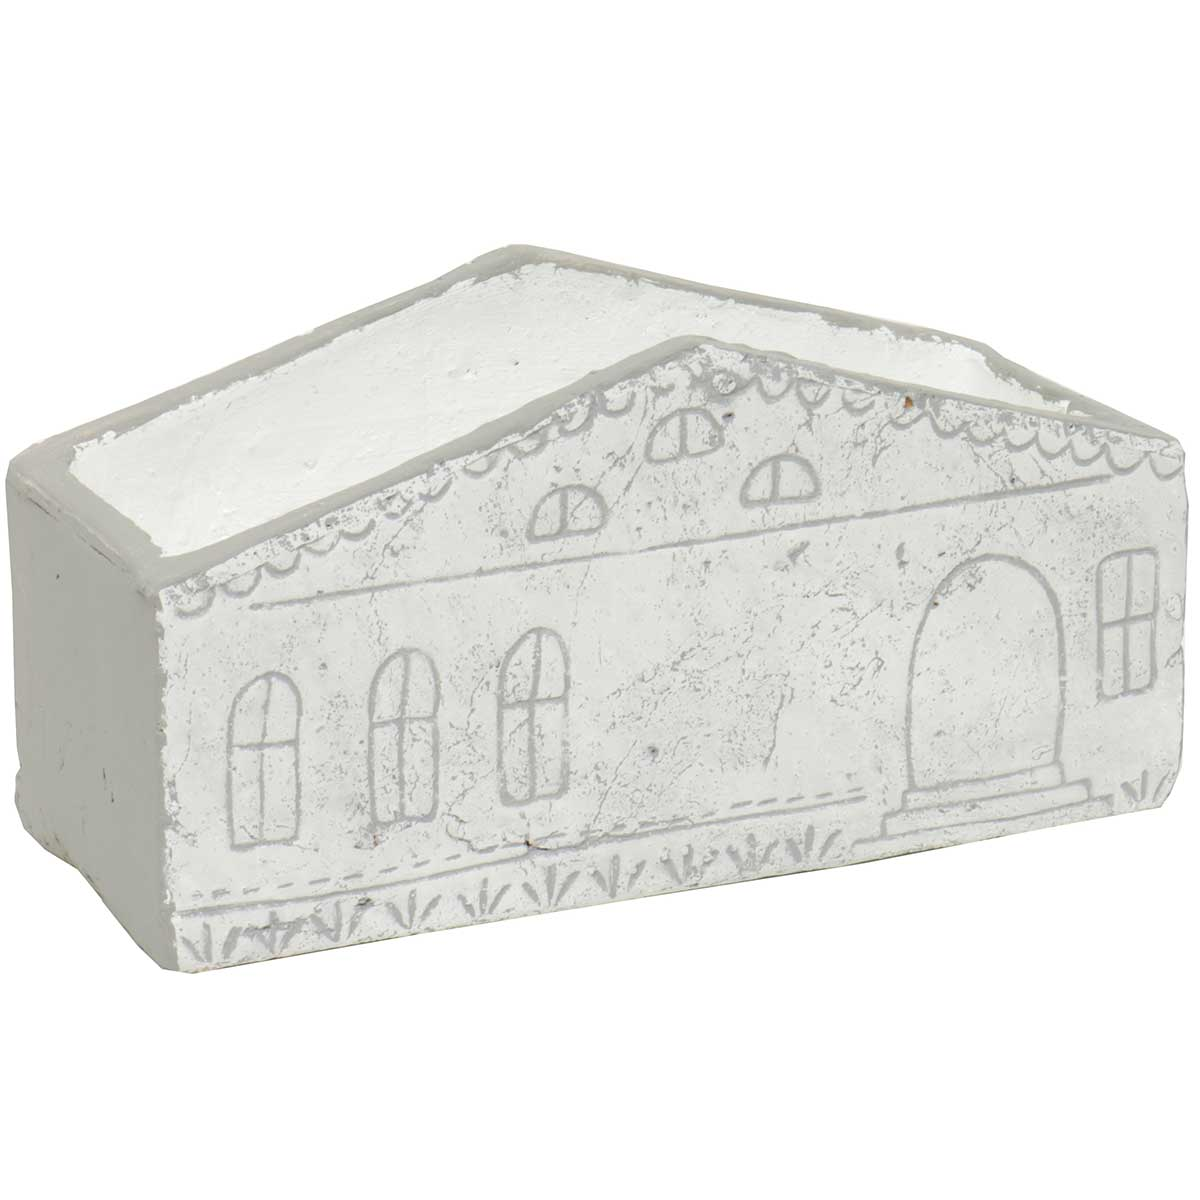 "RECTANGLE HOUSE PLANTER 9.5""X4.5"" GREY"